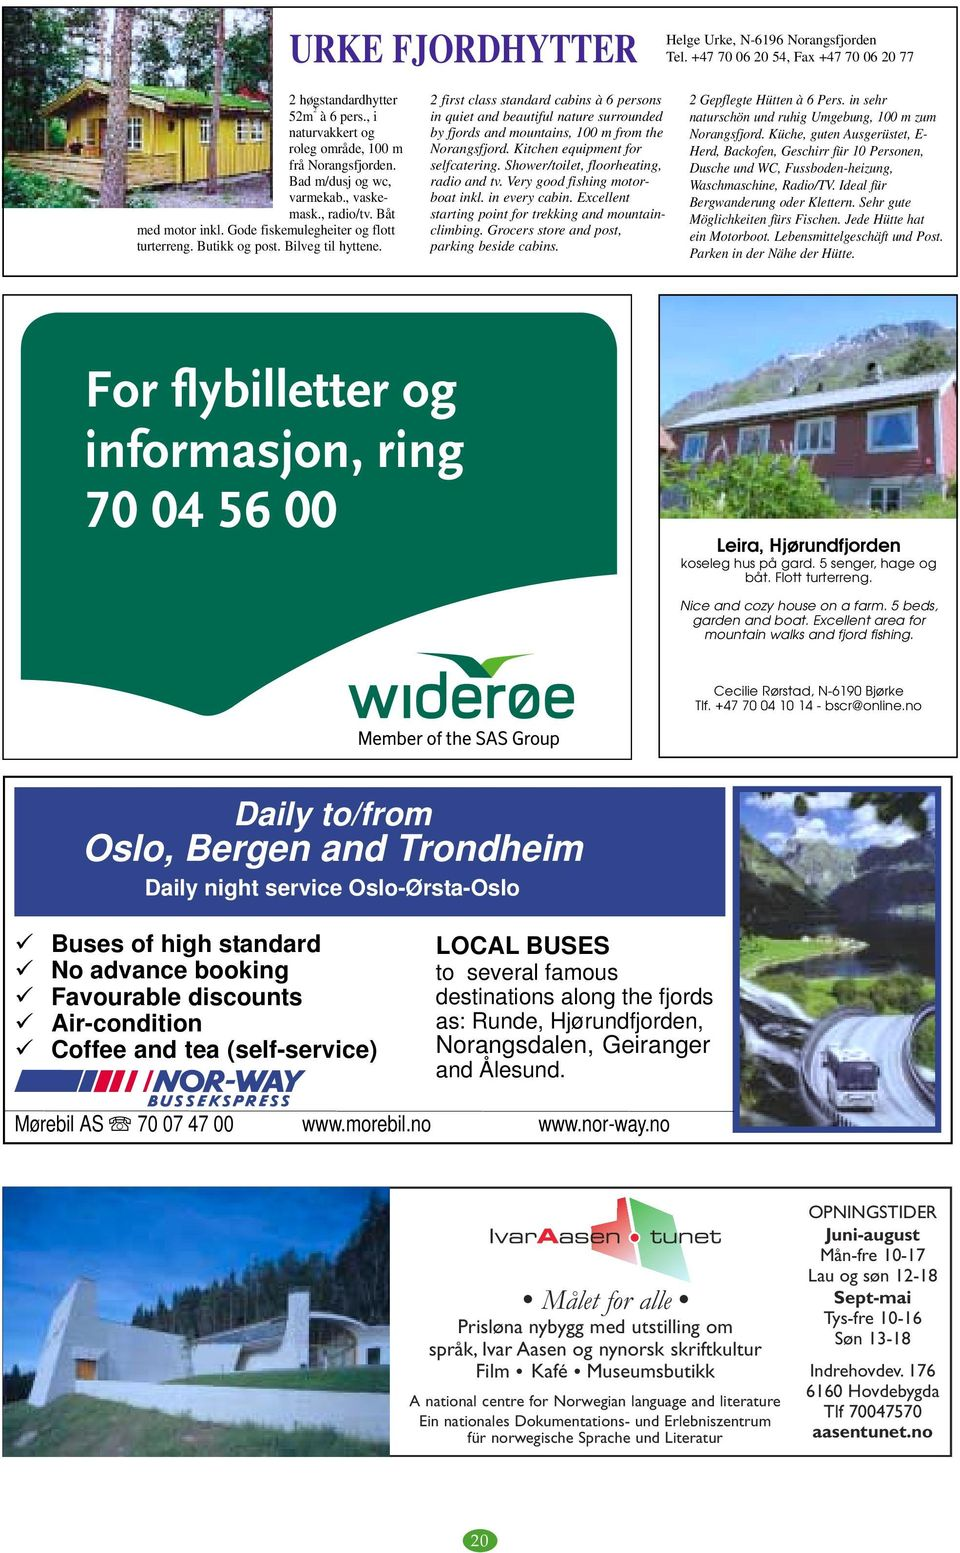 2 first class standard cabins à 6 persons in quiet and beautiful nature surrounded by fjords and mountains, 100 m from the Norangsfjord. Kitchen equipment for selfcatering.